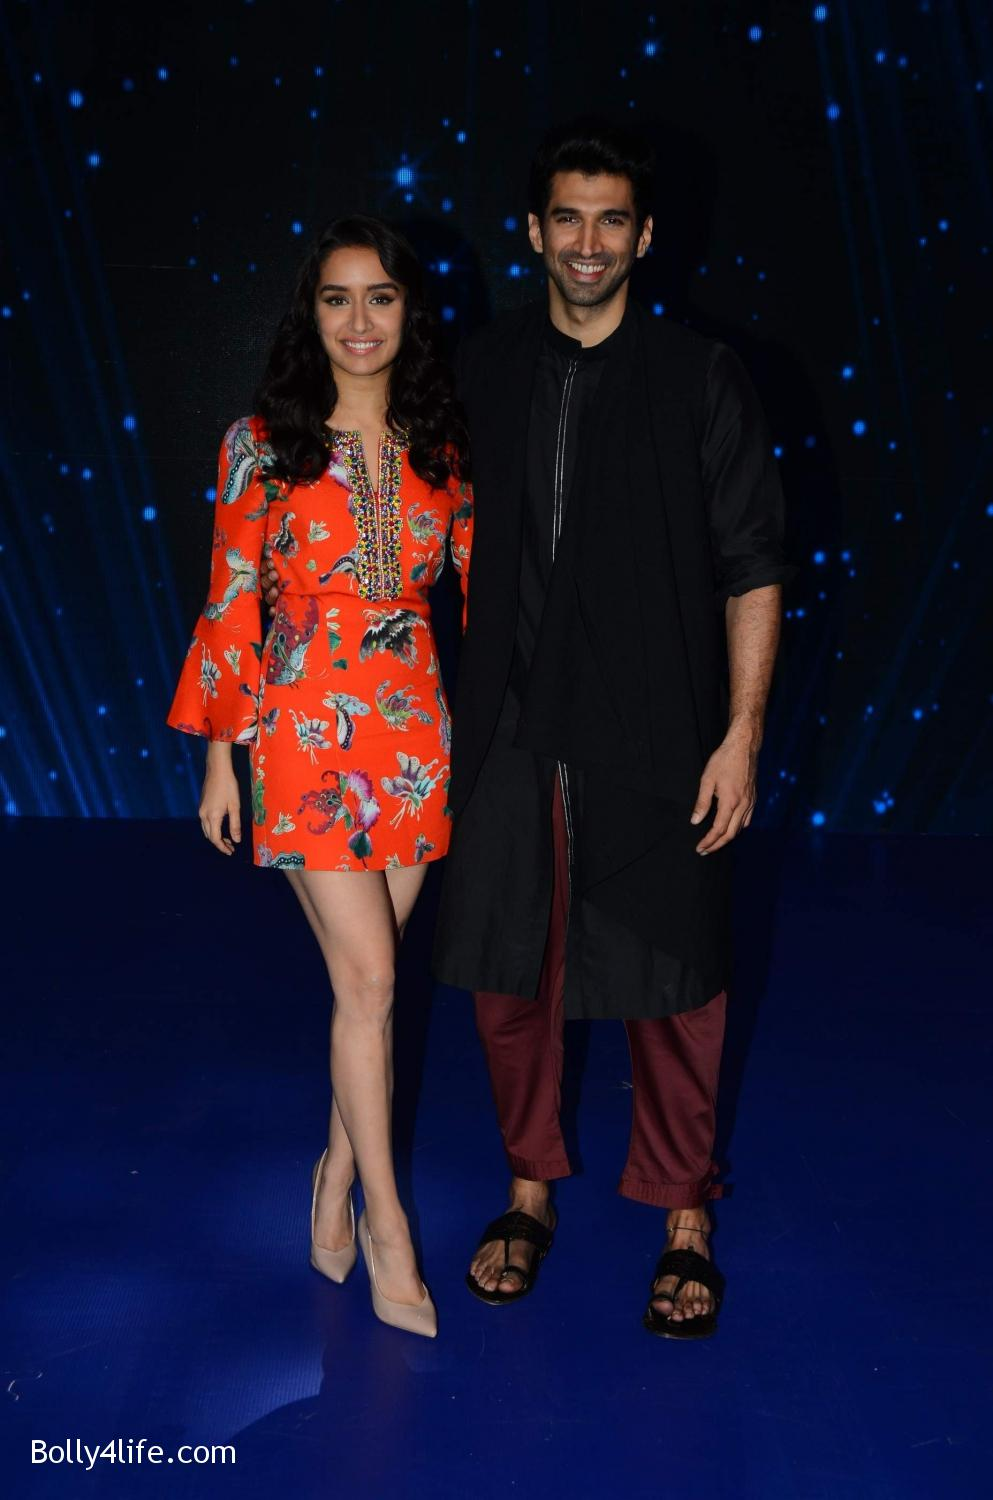 Shraddha-Kapoor-and-Aditya-Roy-Kapur-visit-on-the-set-of-Indian-Idol-Season-9-4.jpg